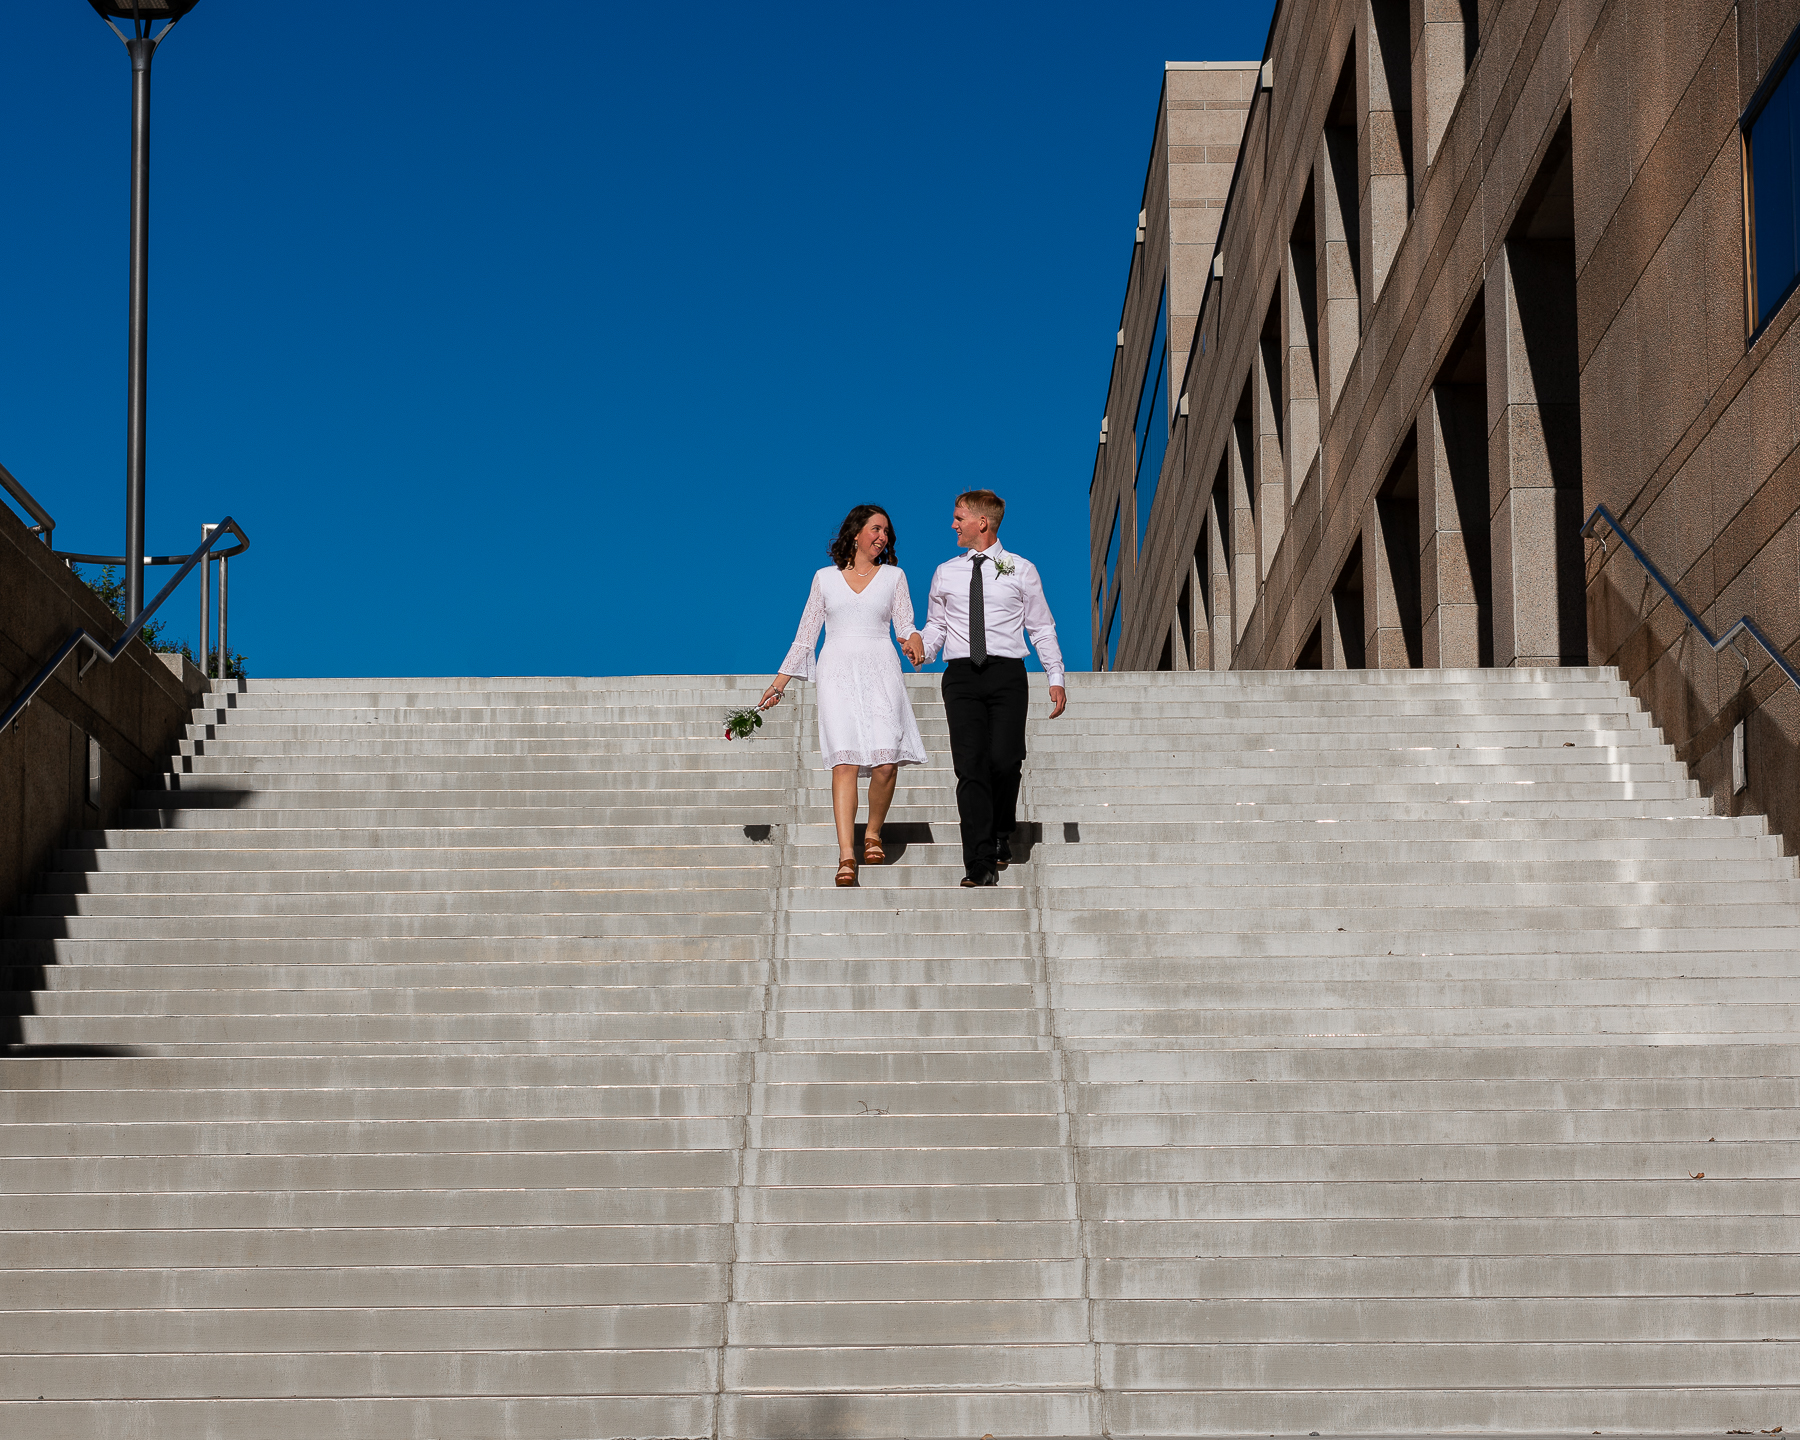 Charlotte courthouse mecklenburg county wedding-3.jpg